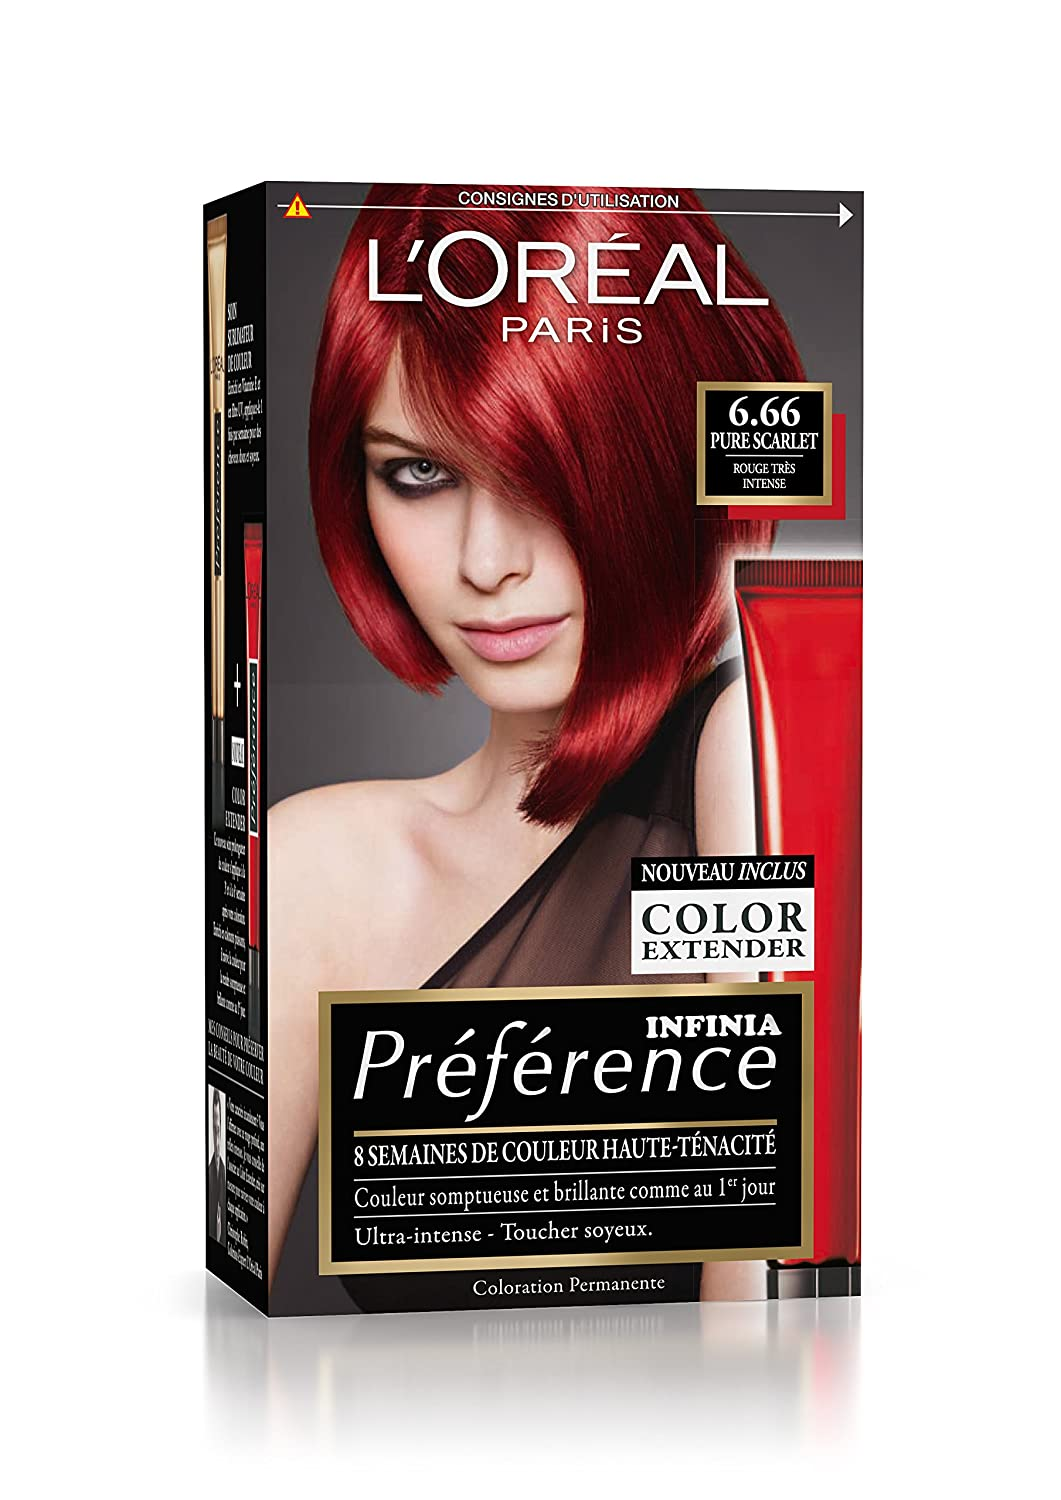 prfrence loral paris coloration permanente 666 rouge trs intense - Coloration Rouge Sans Ammoniaque